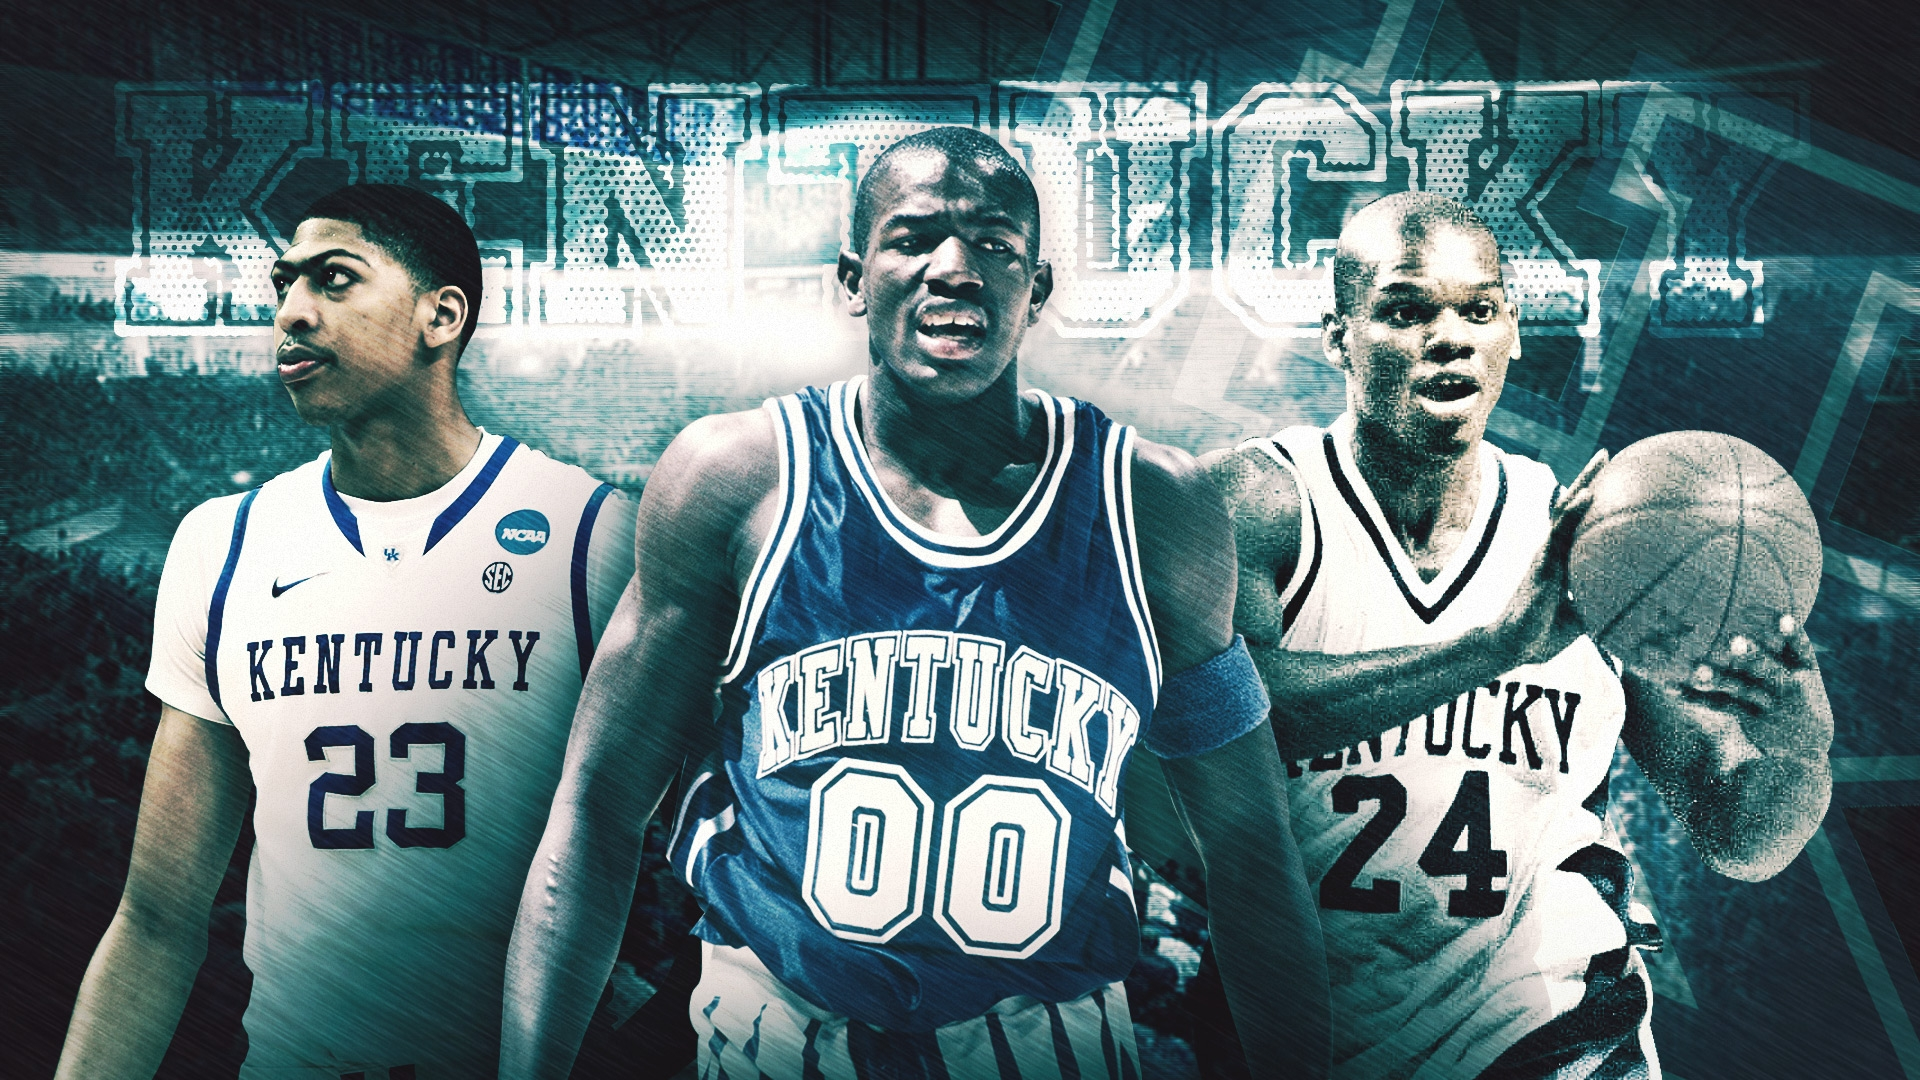 Uk Wildcats Basketball: 10 Greatest Kentucky Basketball Players Of All Time